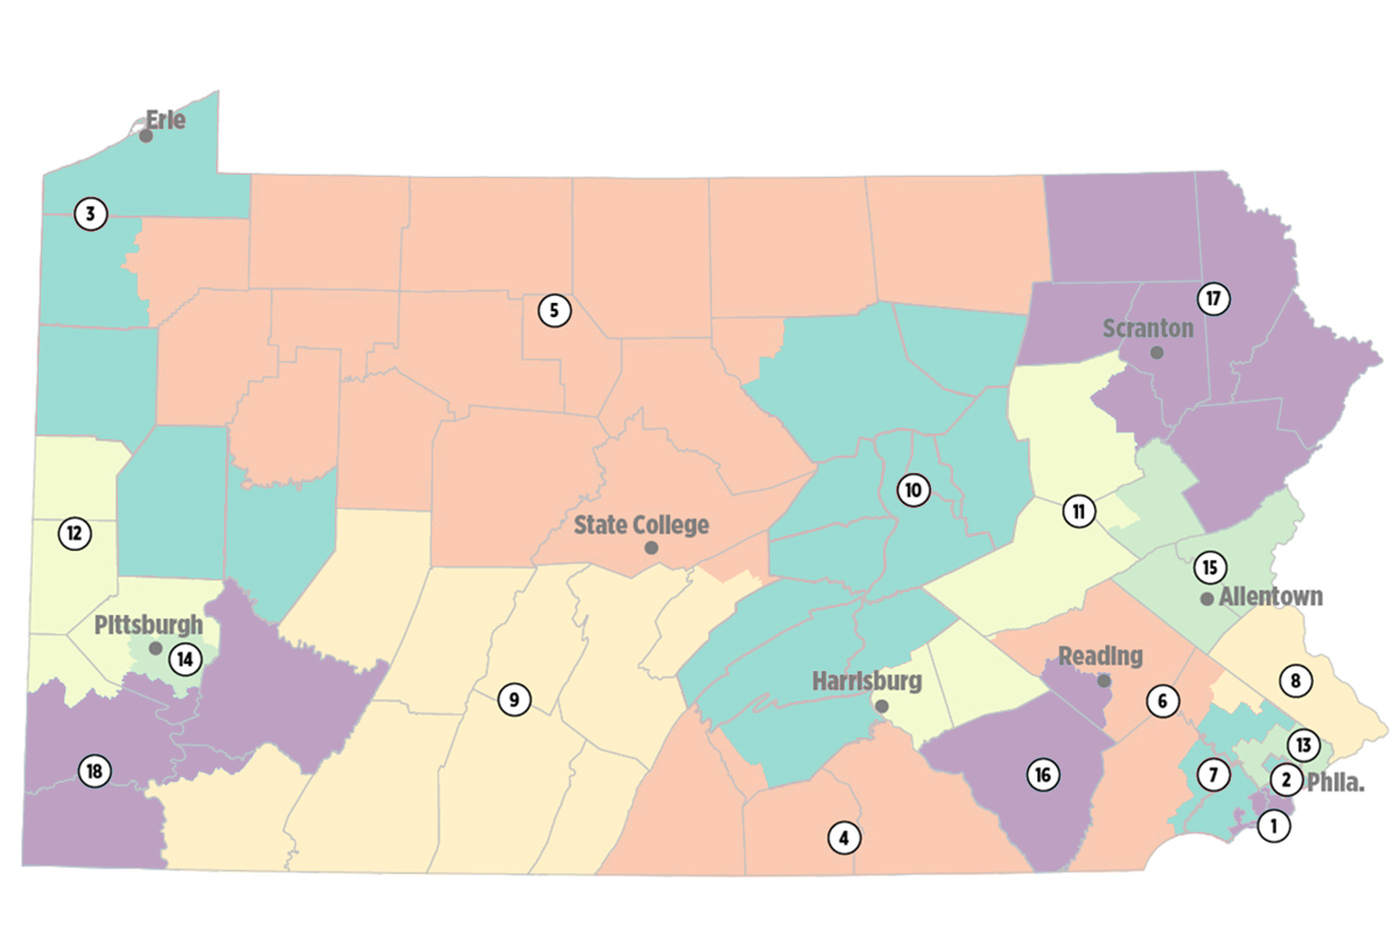 Gov. Wolf rejects Pennsylvania Republicans' map proposal, saying it remains a partisan gerrymander